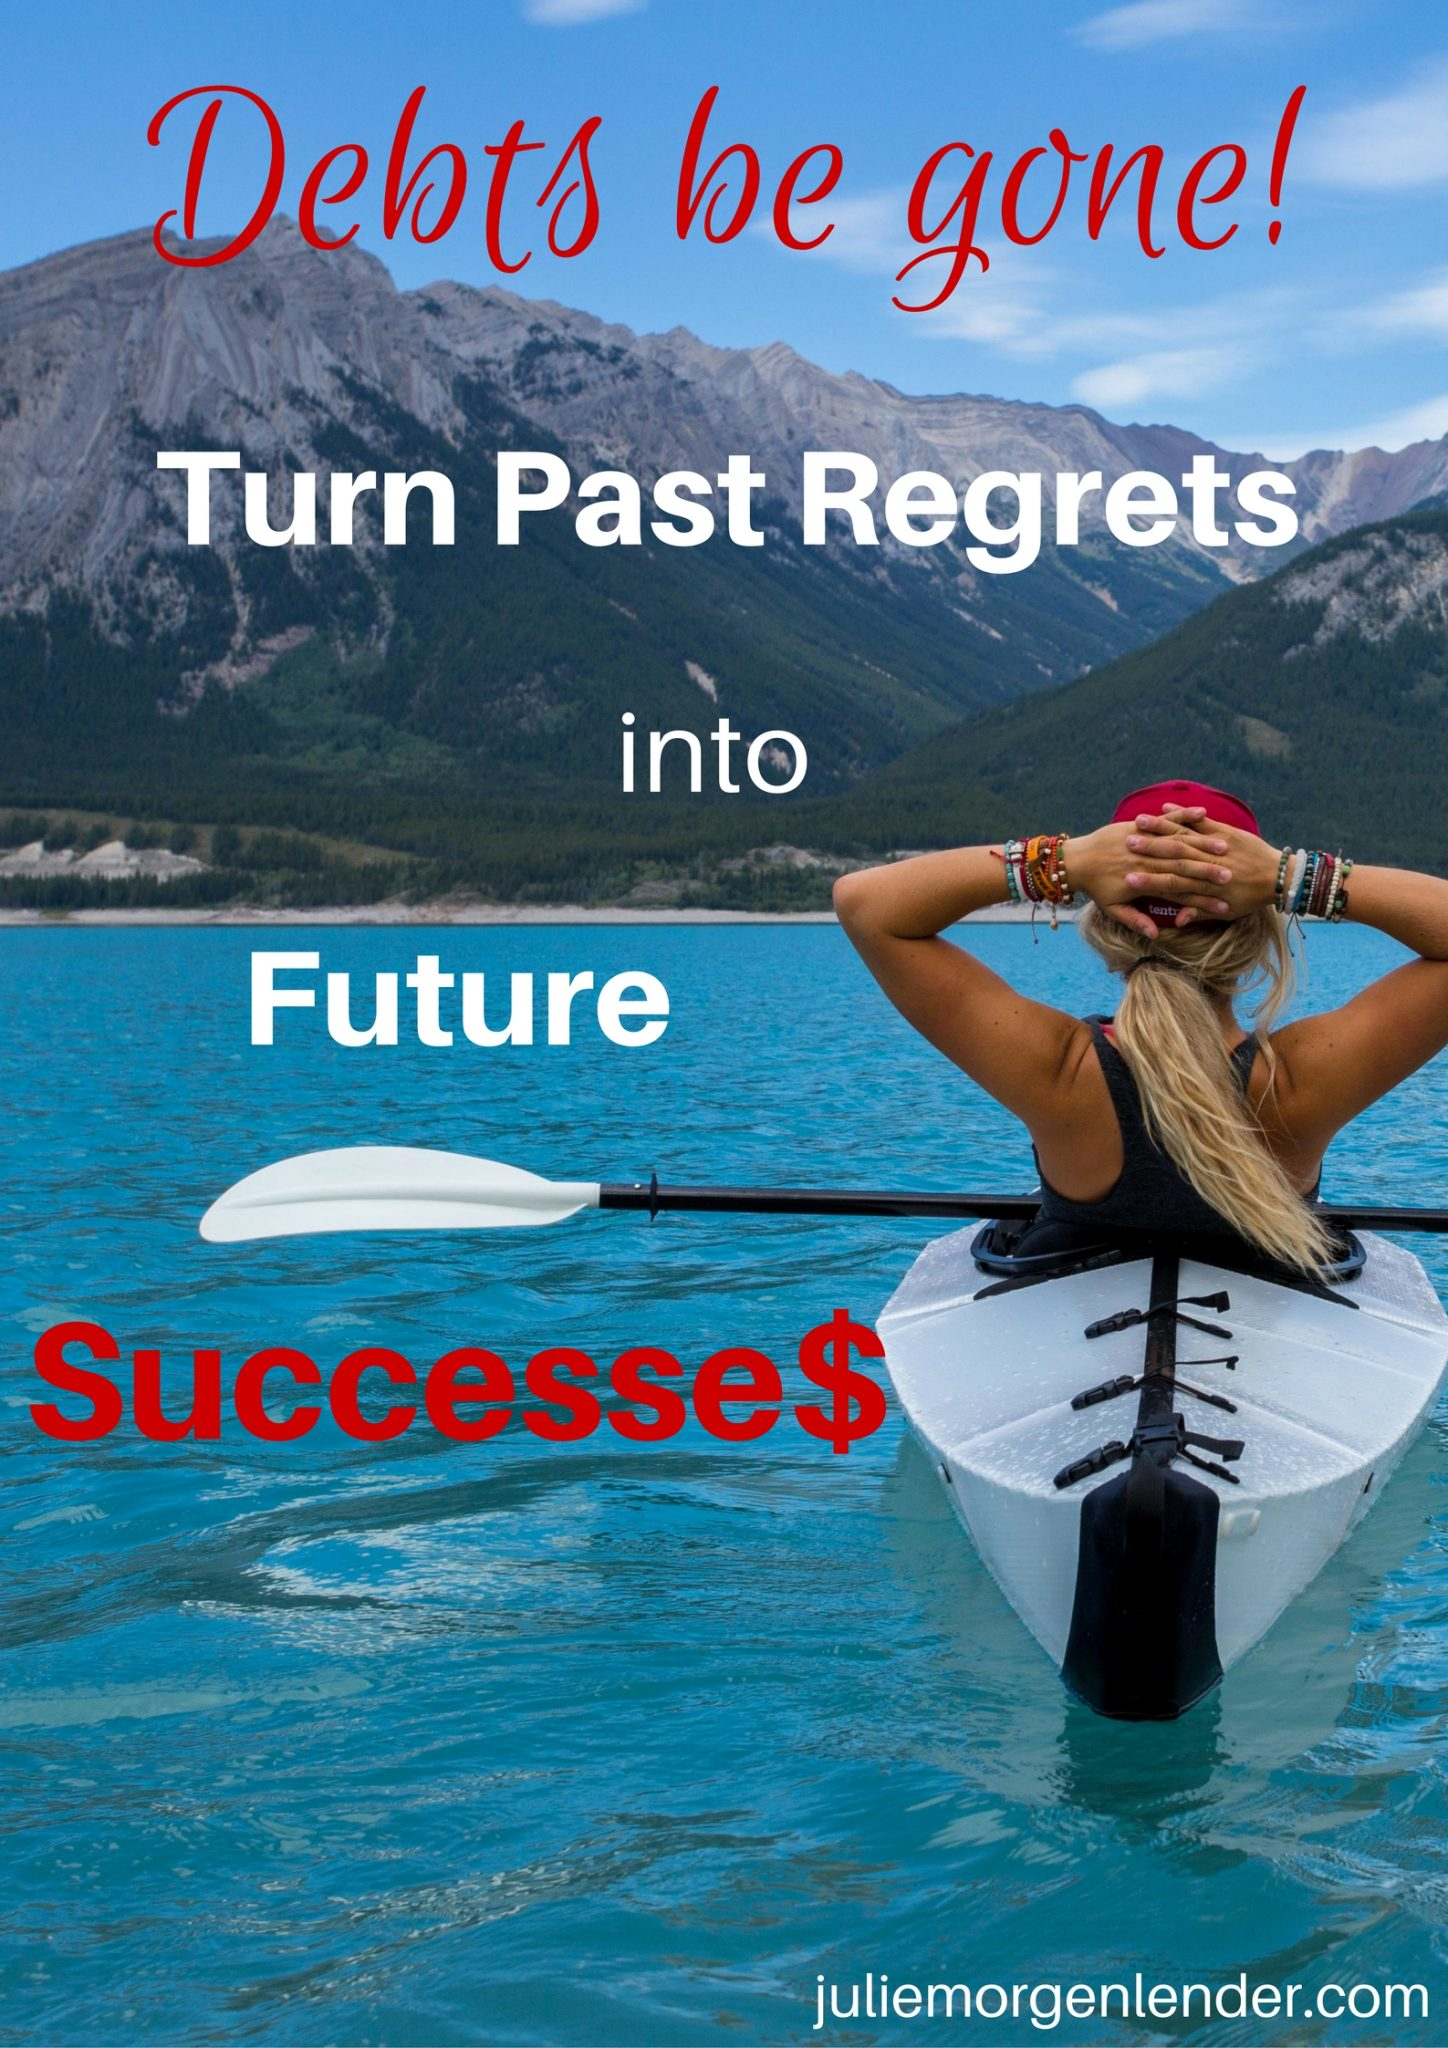 Debts be gone! Turn past regrets into future successes